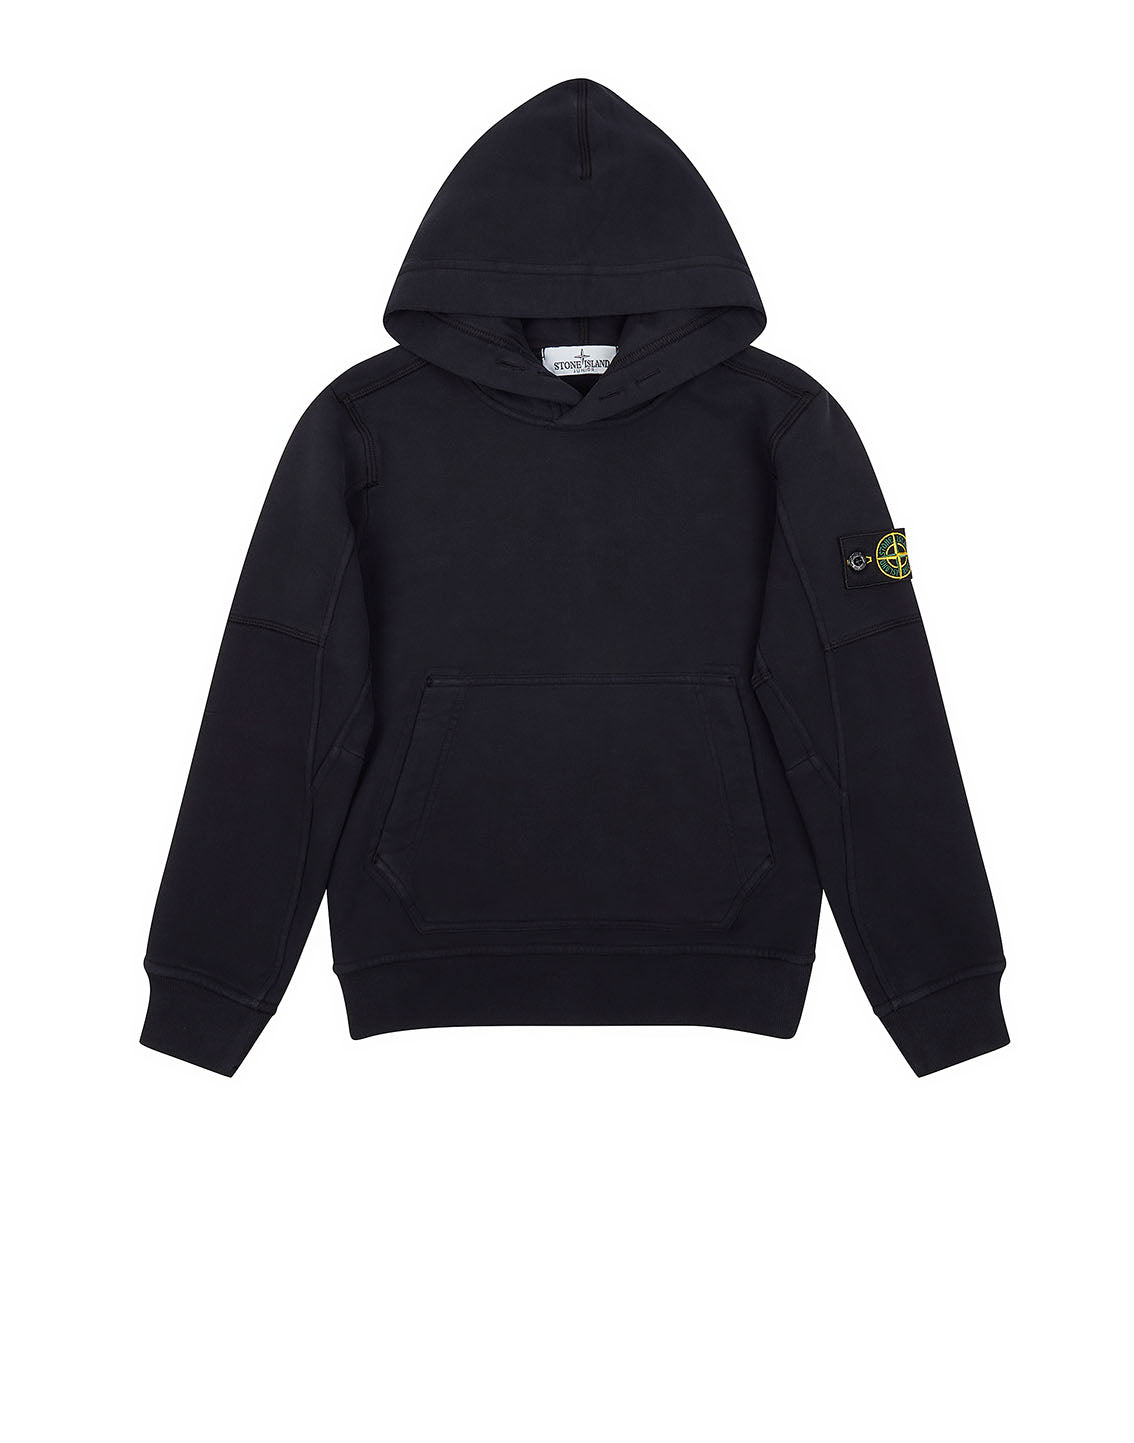 60240 Hooded Sweatshirt in Navy Blue